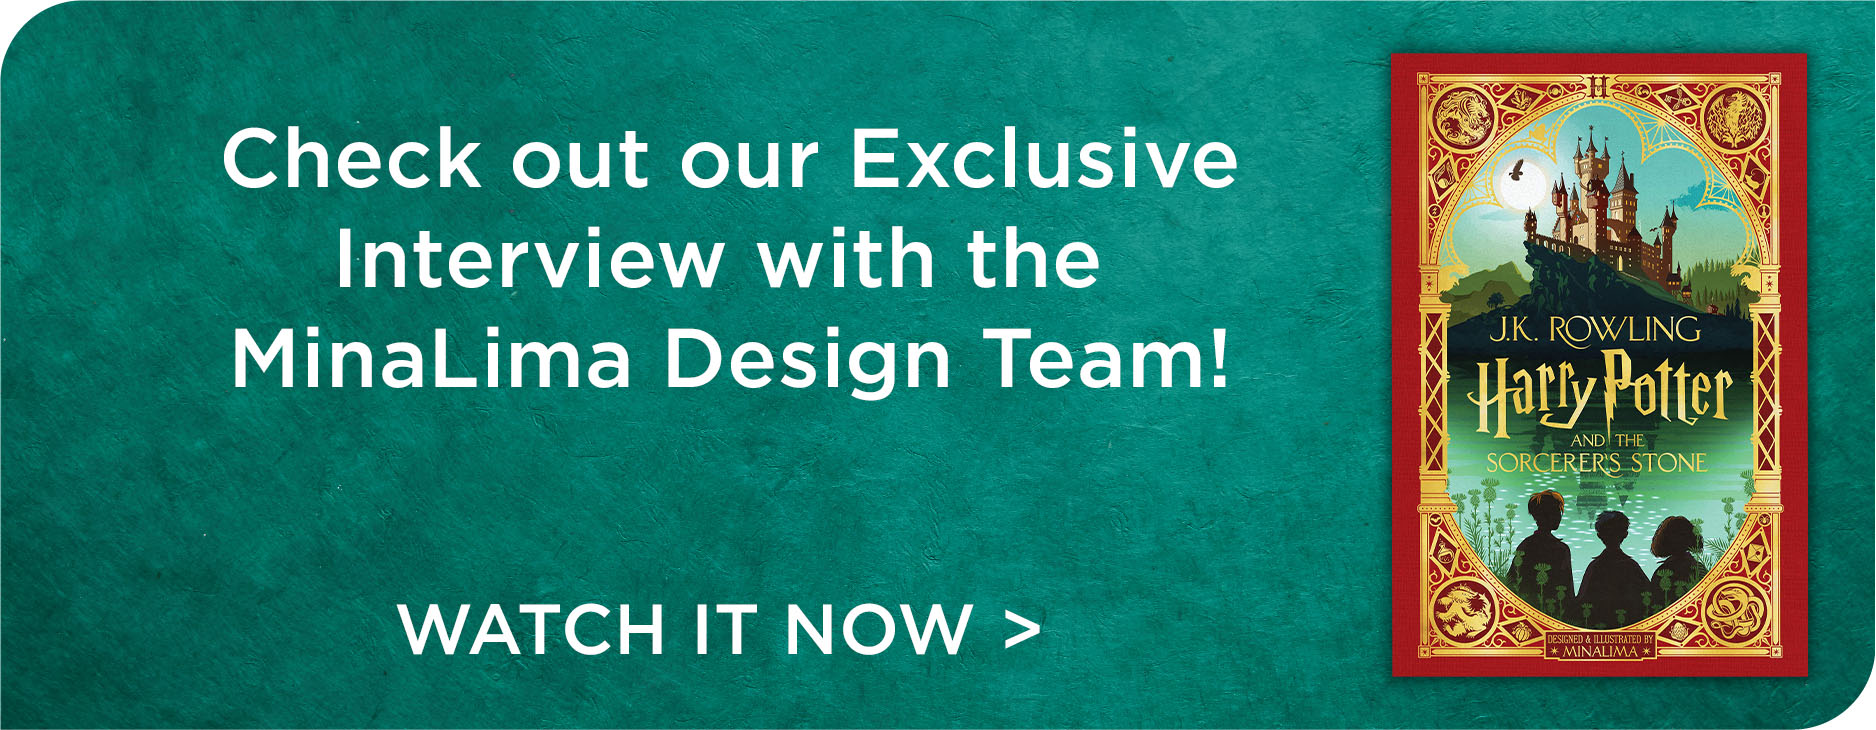 Exclusive Inteview with the MinaLima Design Team!